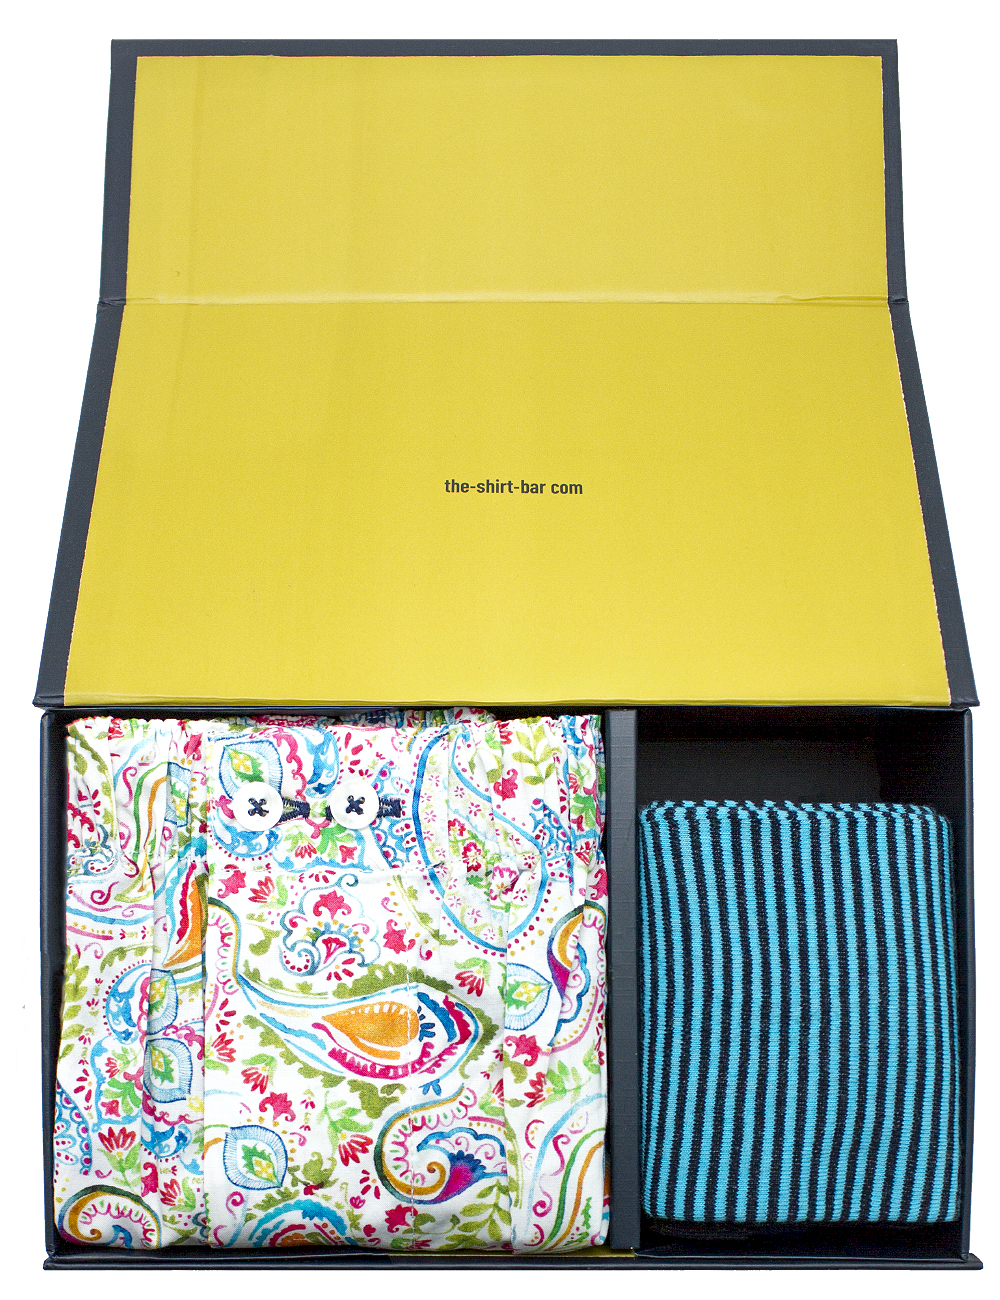 Green Paisley Boxer Shorts and Turquoise Socks Gift Set - SOCBXGS1.1